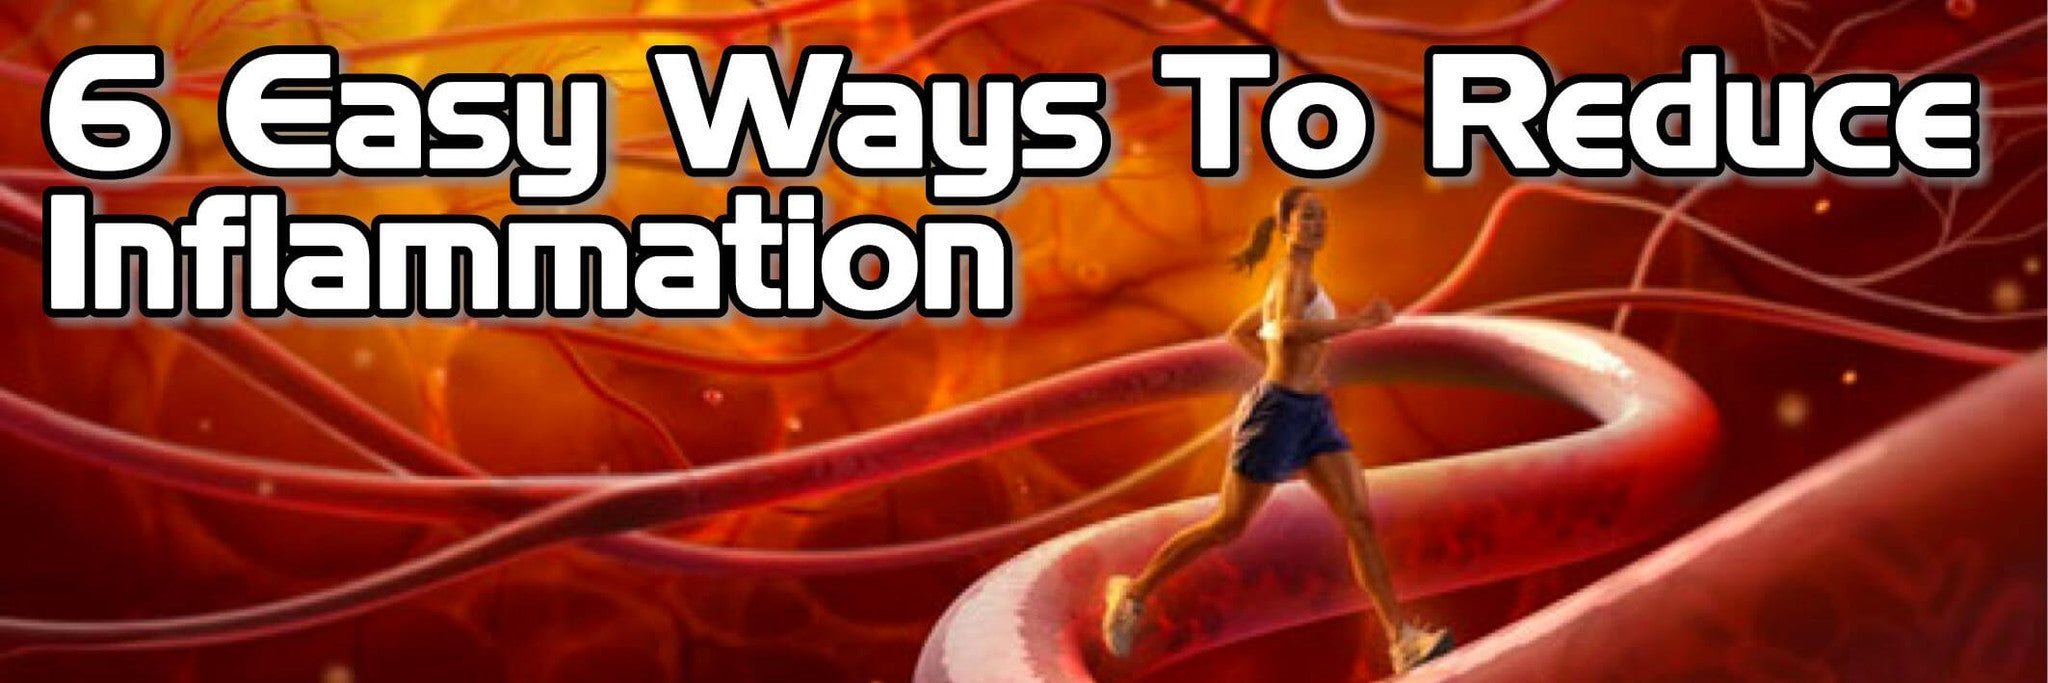 6 Easy Ways to Reduce Inflammation